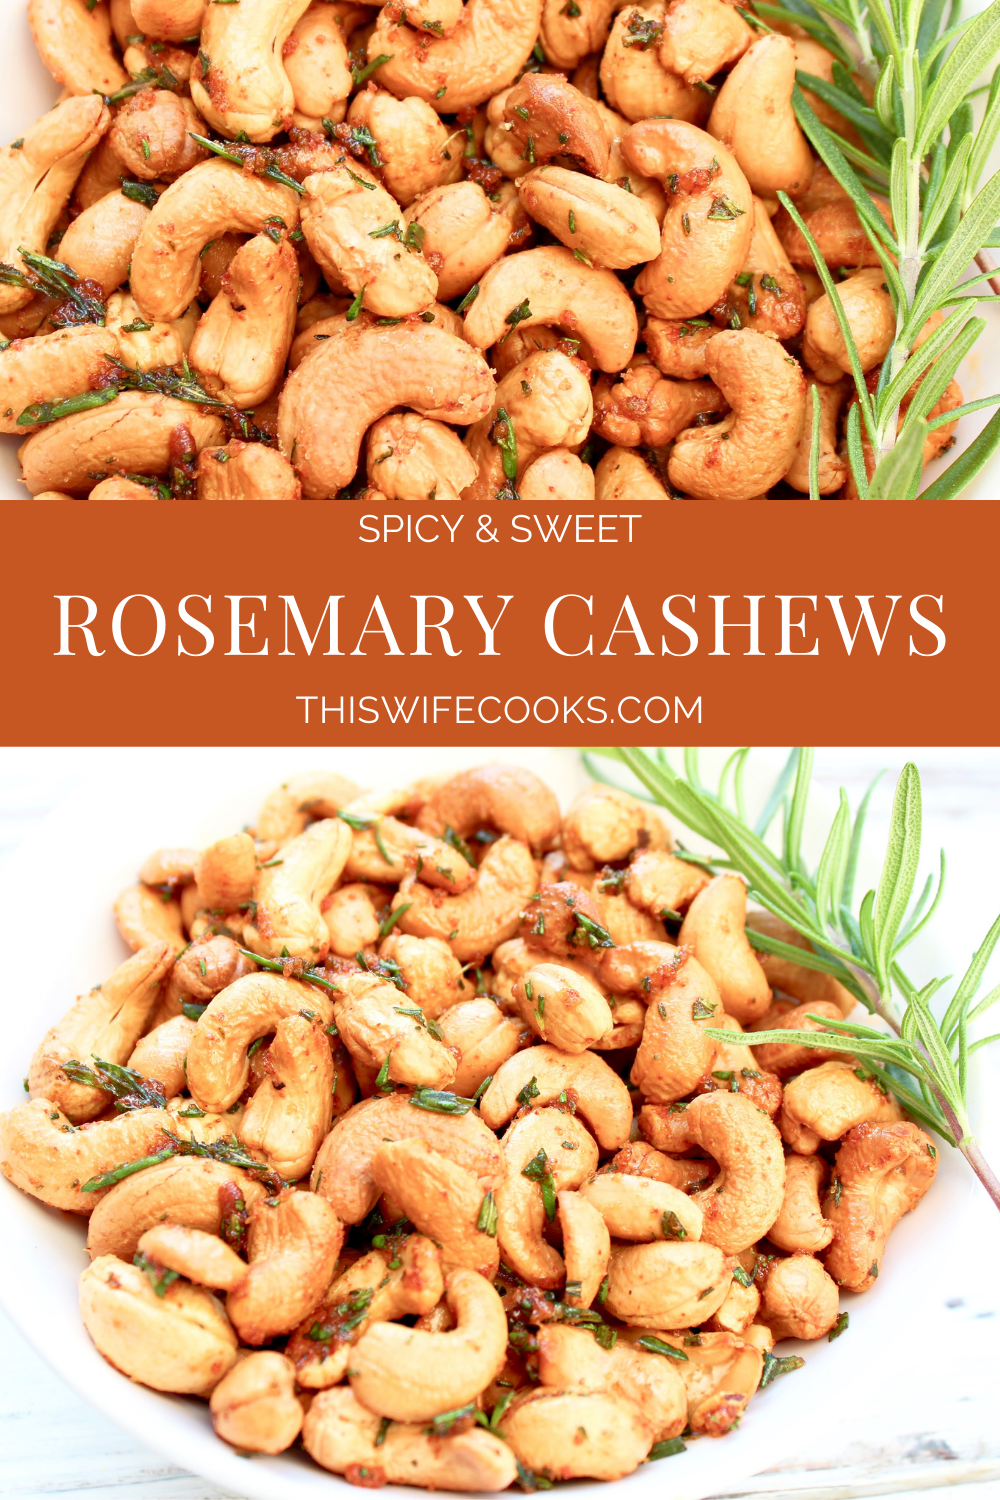 Rosemary Cashews ~ These roasted cashews are a little sweet, a little spicy, completely delicious, and perfect for holiday gifting! via @thiswifecooks